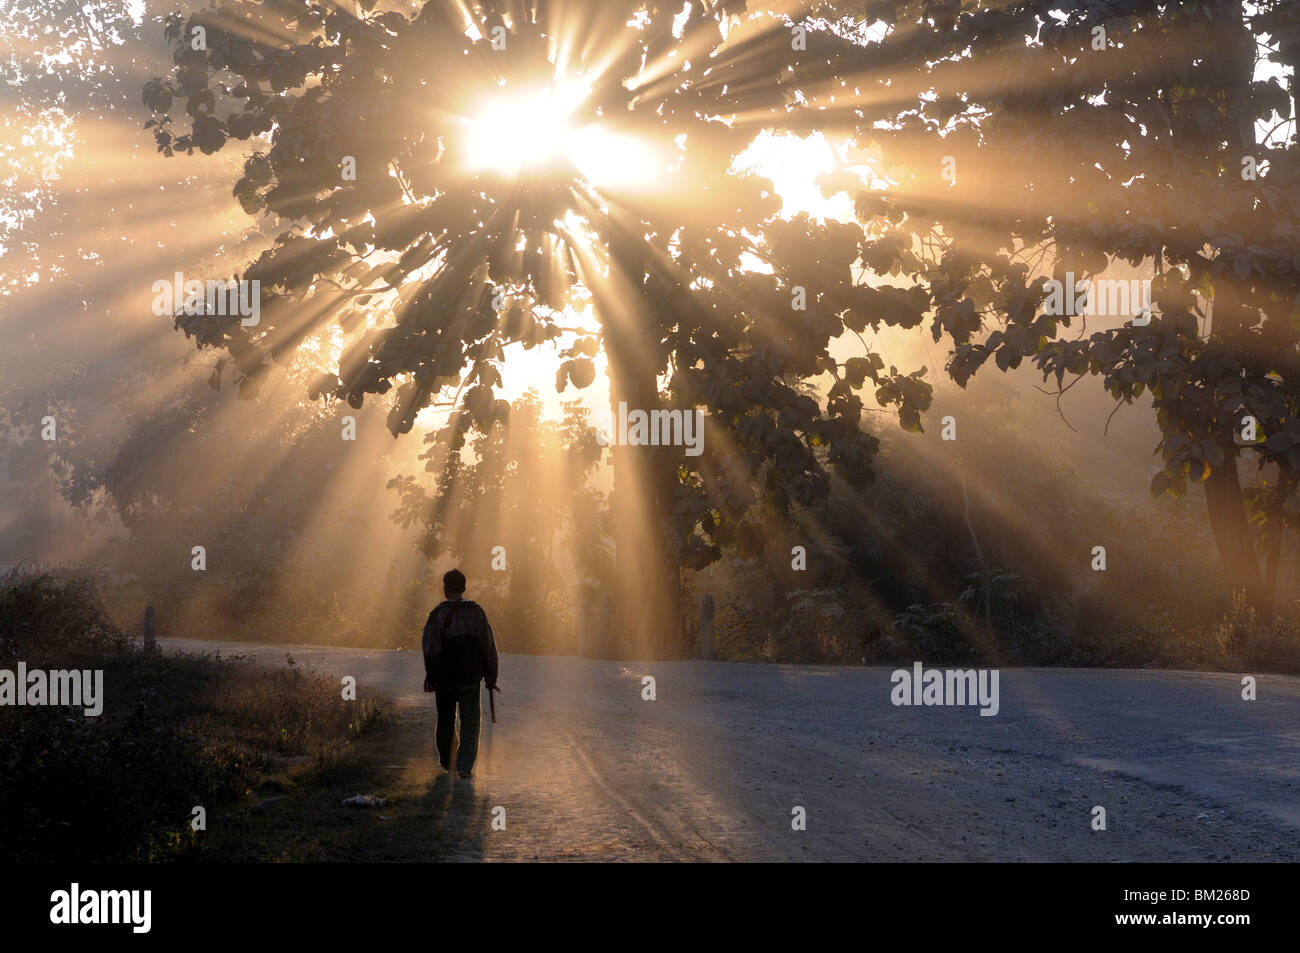 Man walking along a street with sun rays shining through a tree, Highlands, Myanmar (Burma) - Stock Image